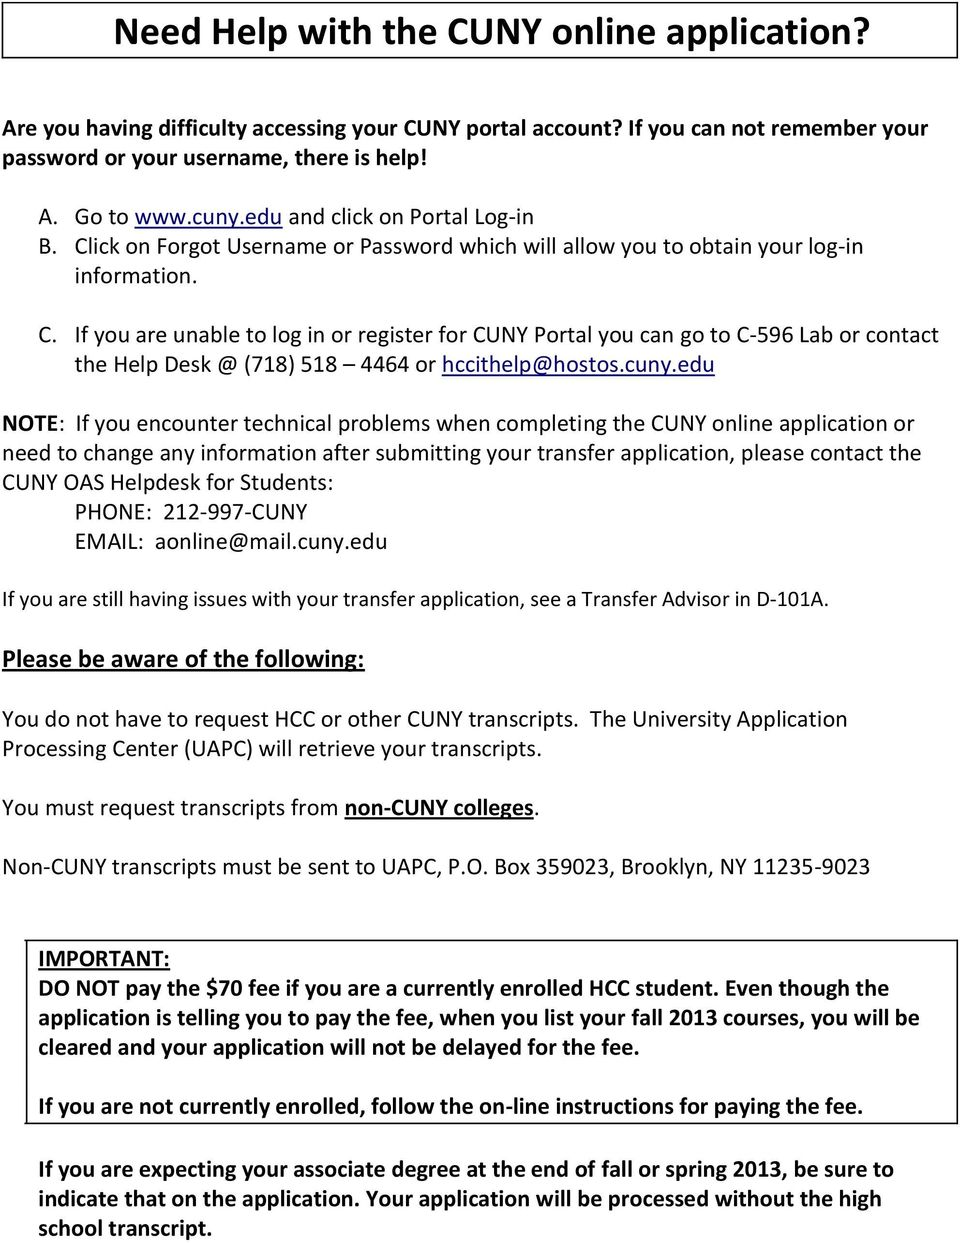 cuny.edu NOTE: If you encounter technical problems when completing the CUNY online application or need to change any information after submitting your transfer application, please contact the CUNY